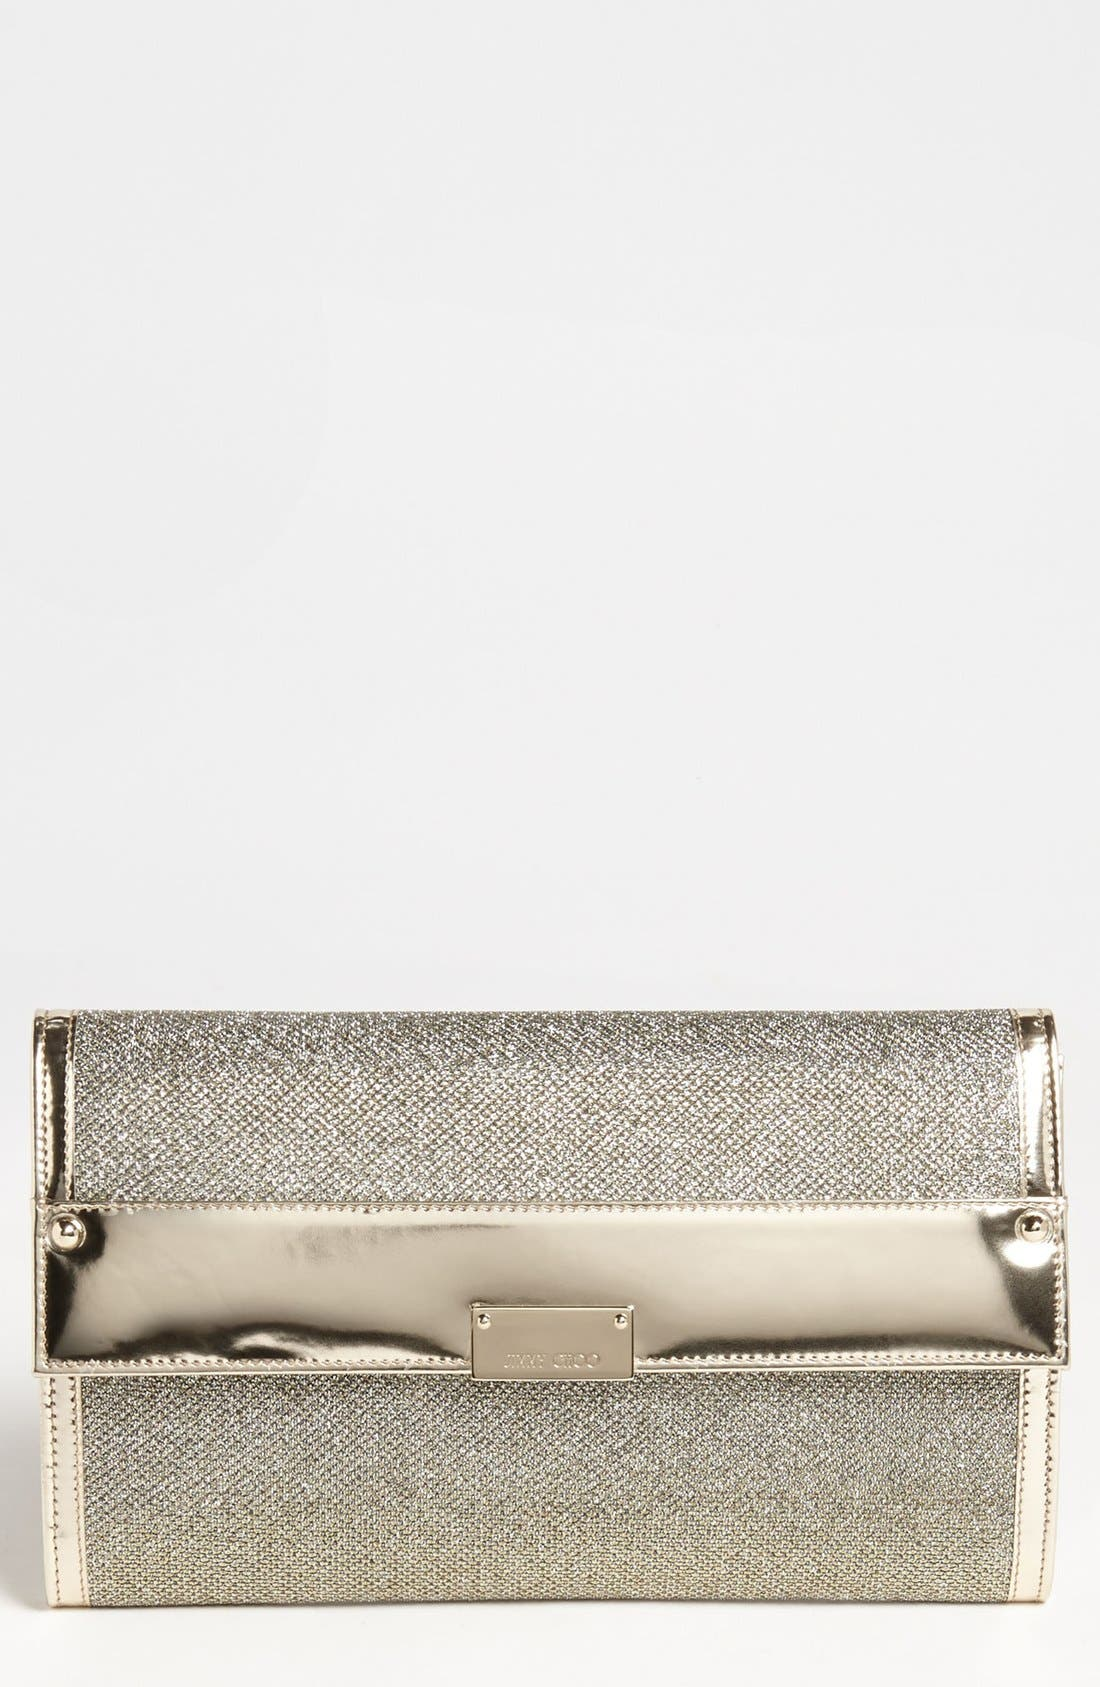 Alternate Image 1 Selected - Jimmy Choo 'Reese - XL' Lamé Clutch